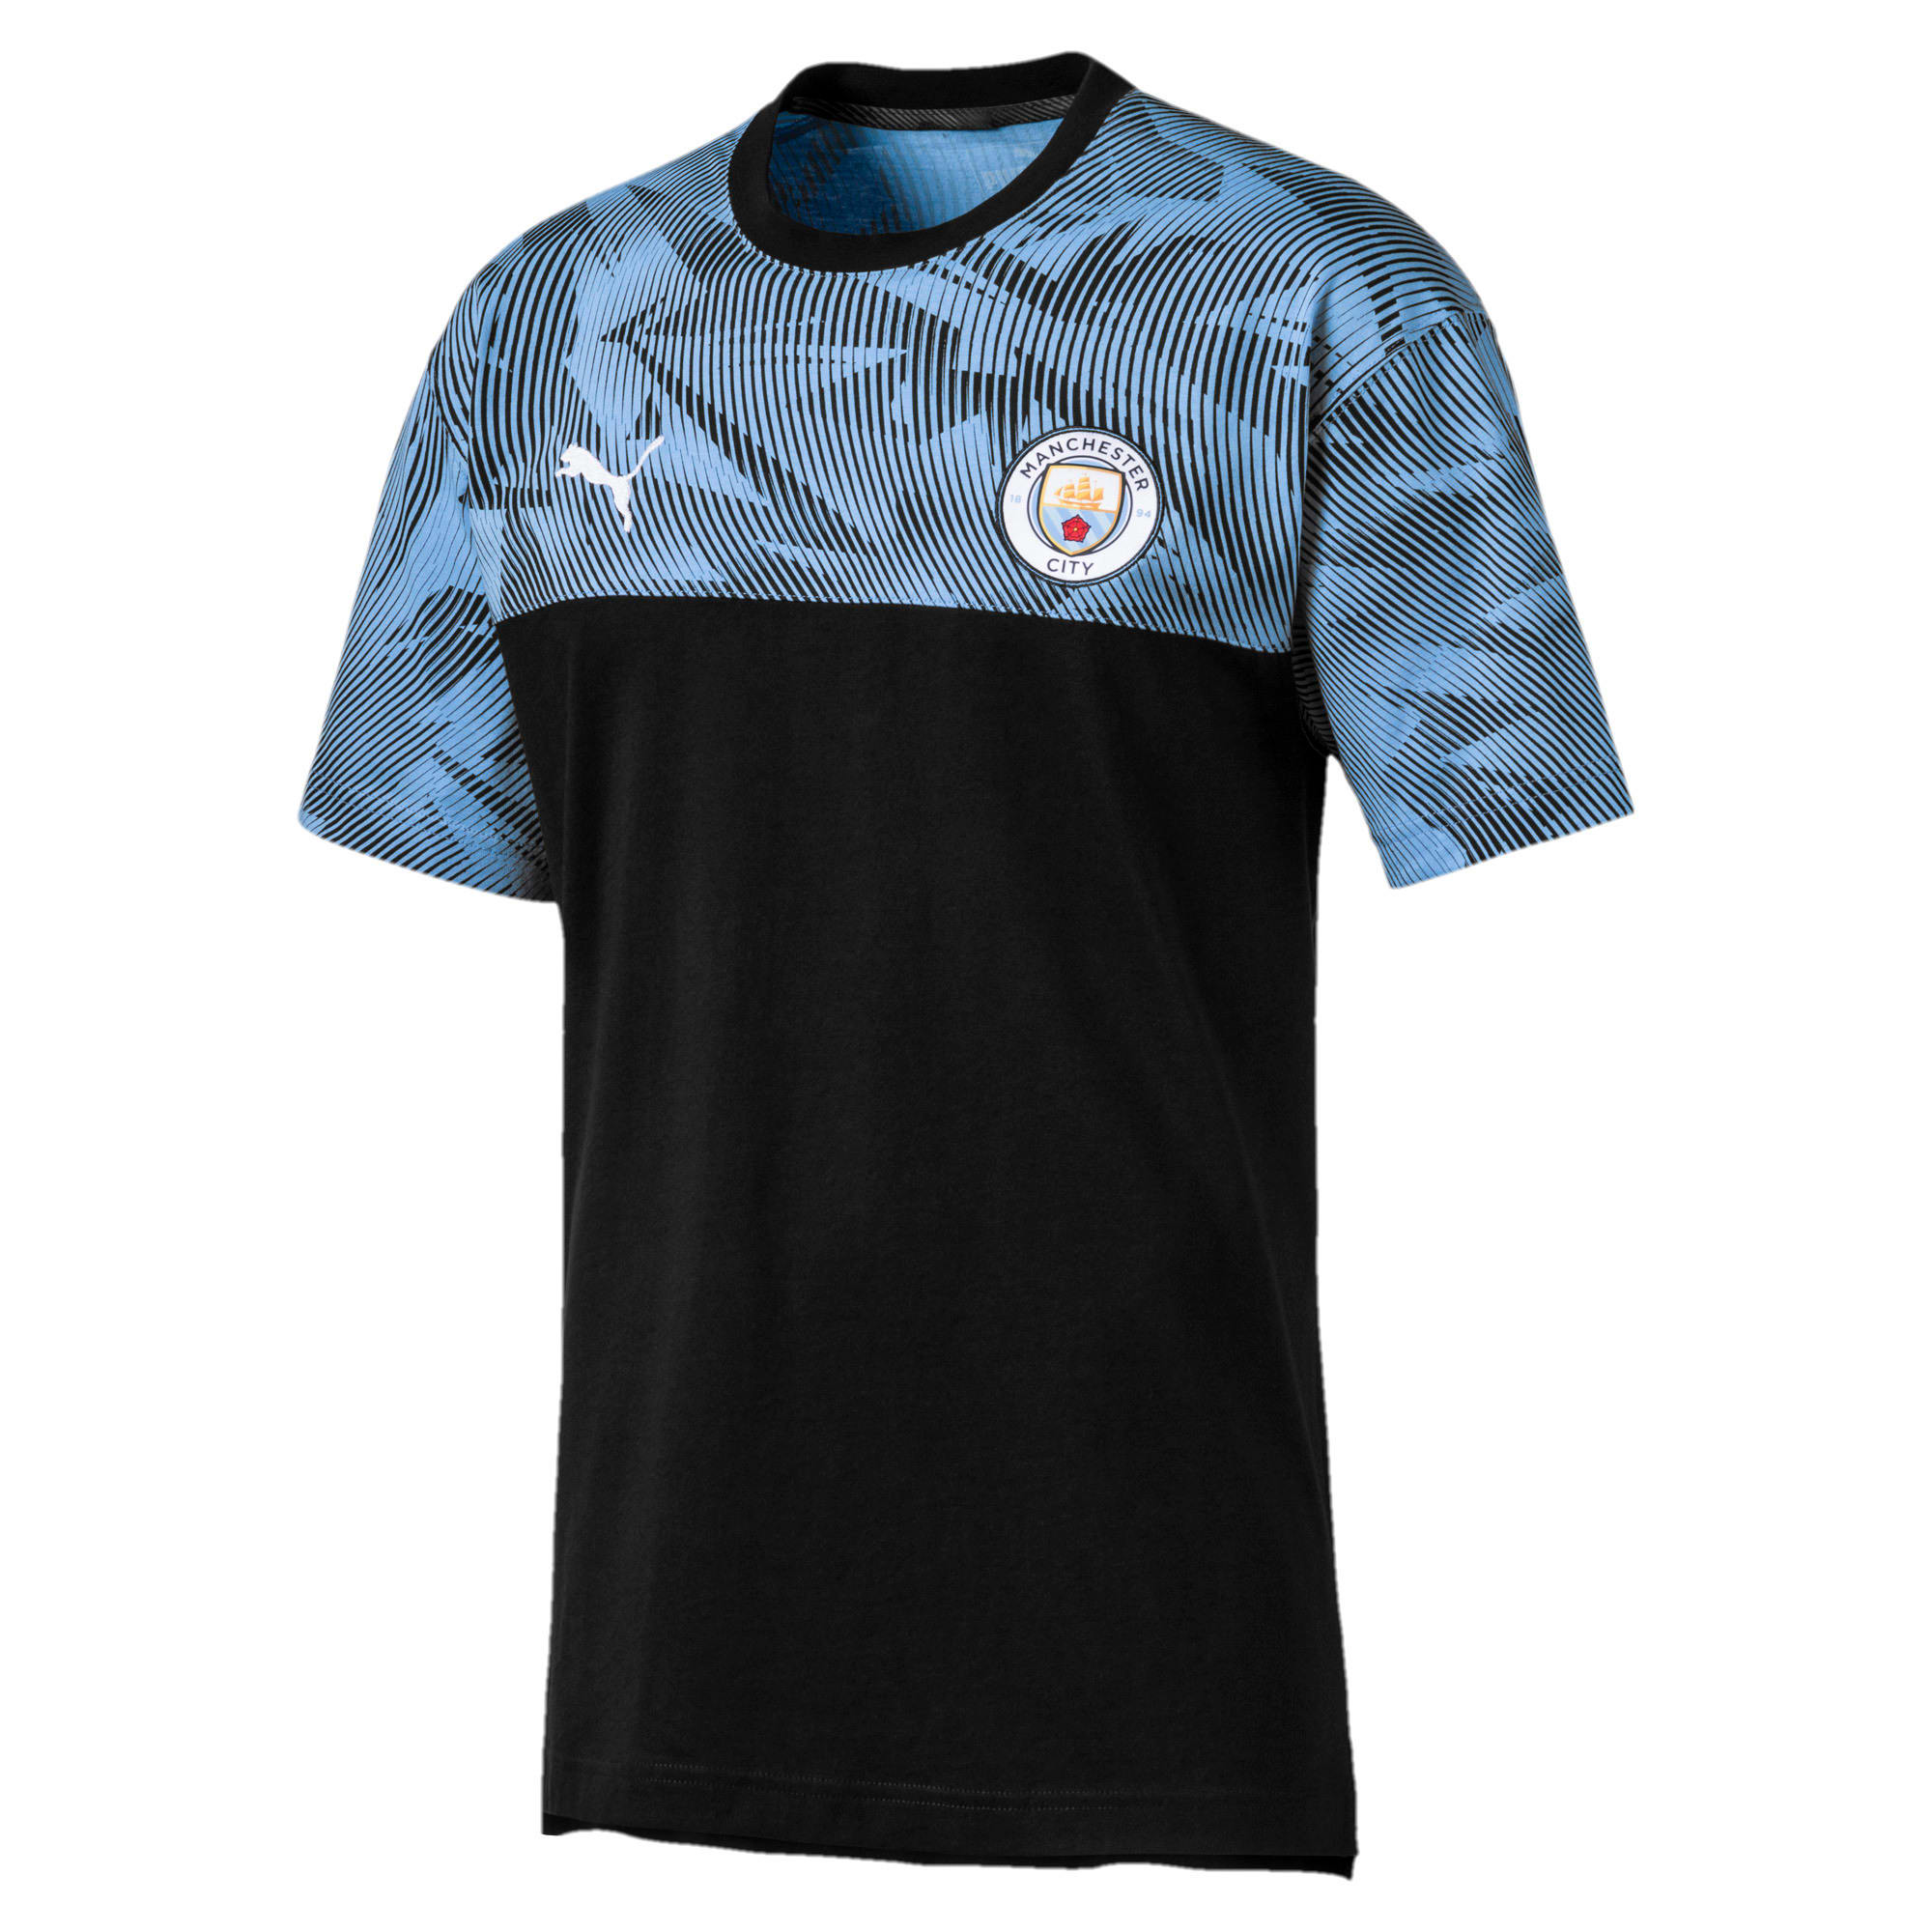 Thumbnail 1 of T-Shirt Manchester City Casuals pour homme, Puma Black-Team Light Blue, medium